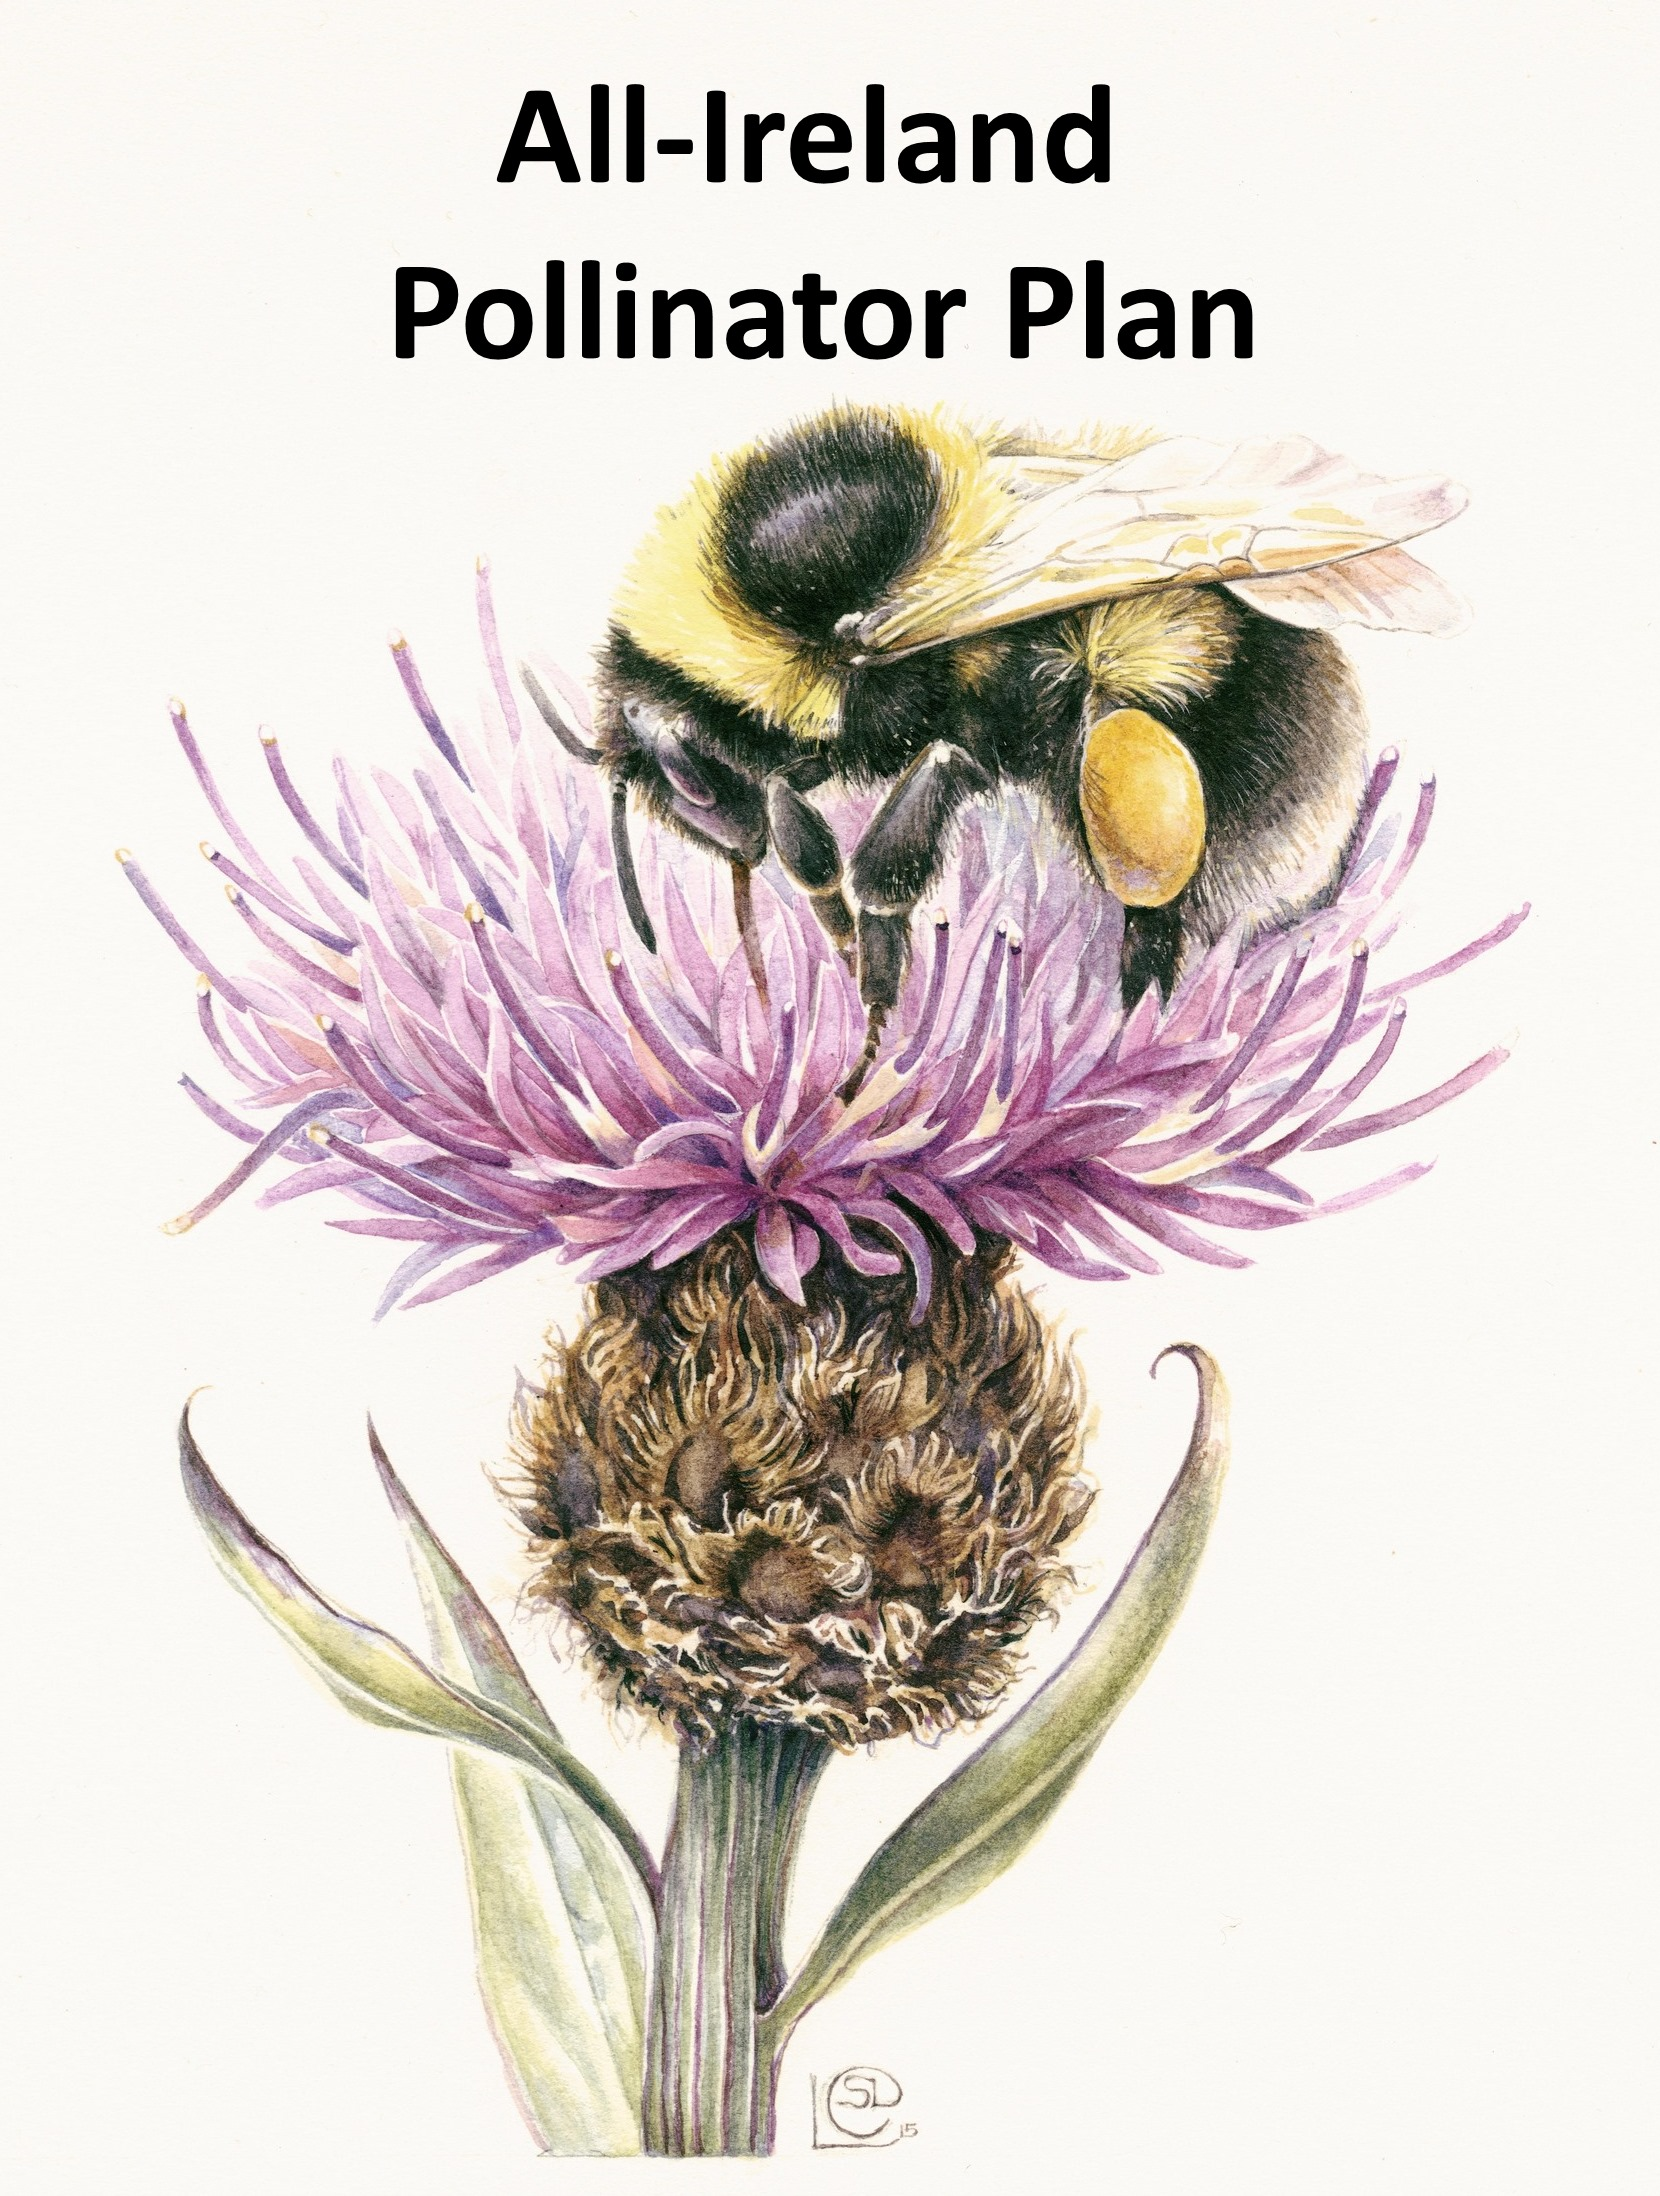 Pollinator Friendly Councils